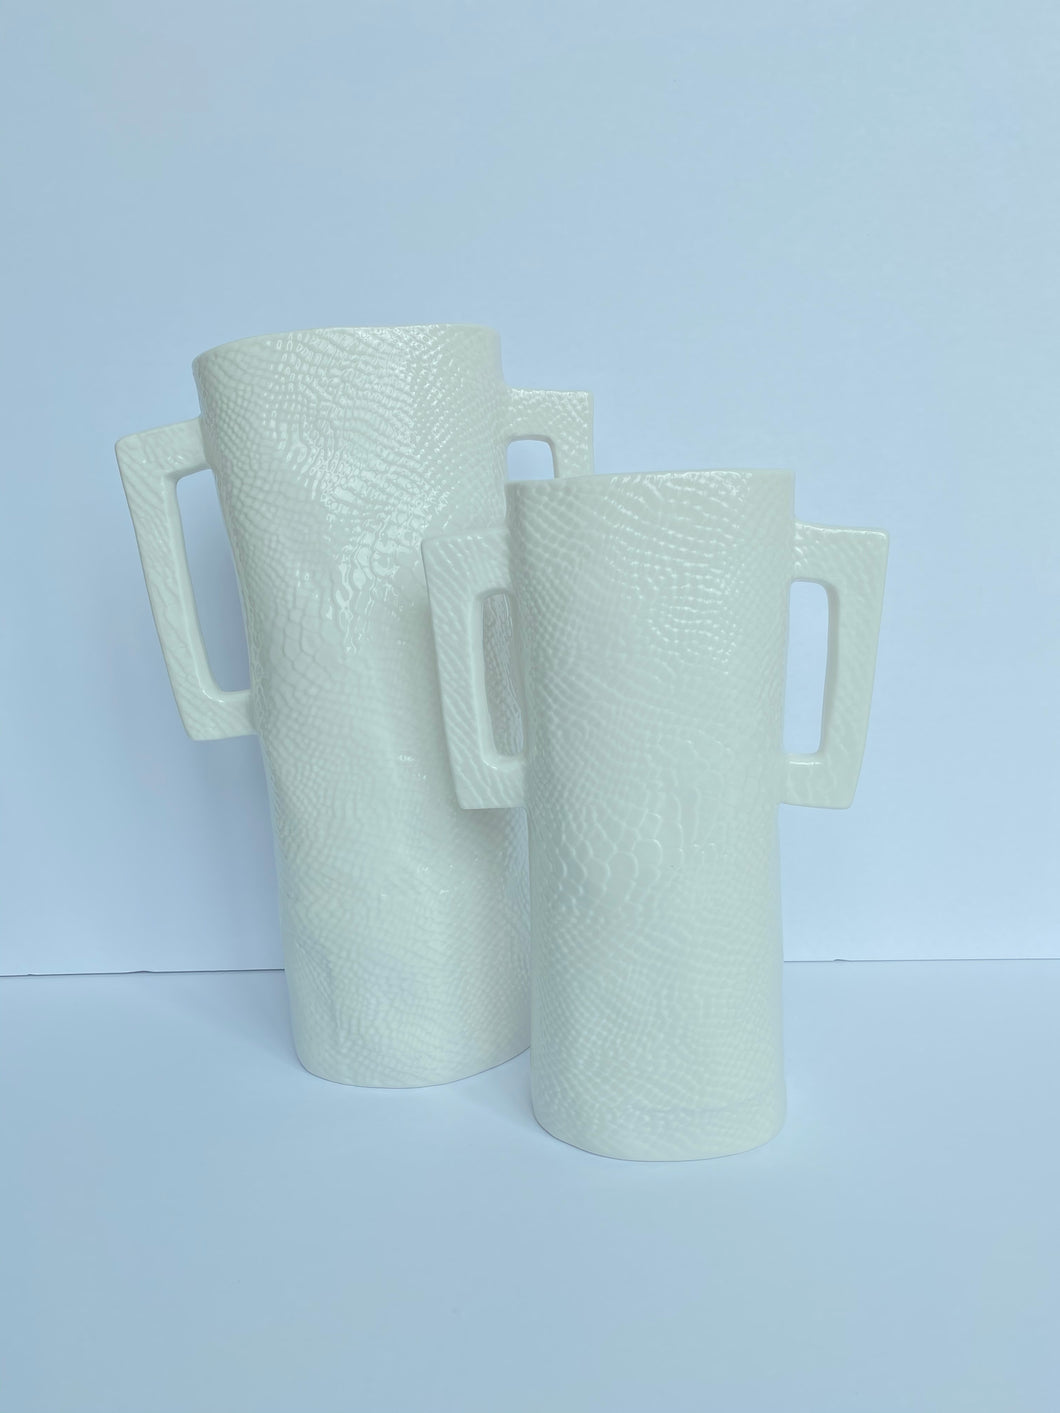 Snake Skin Textured Ceramic Vases - White